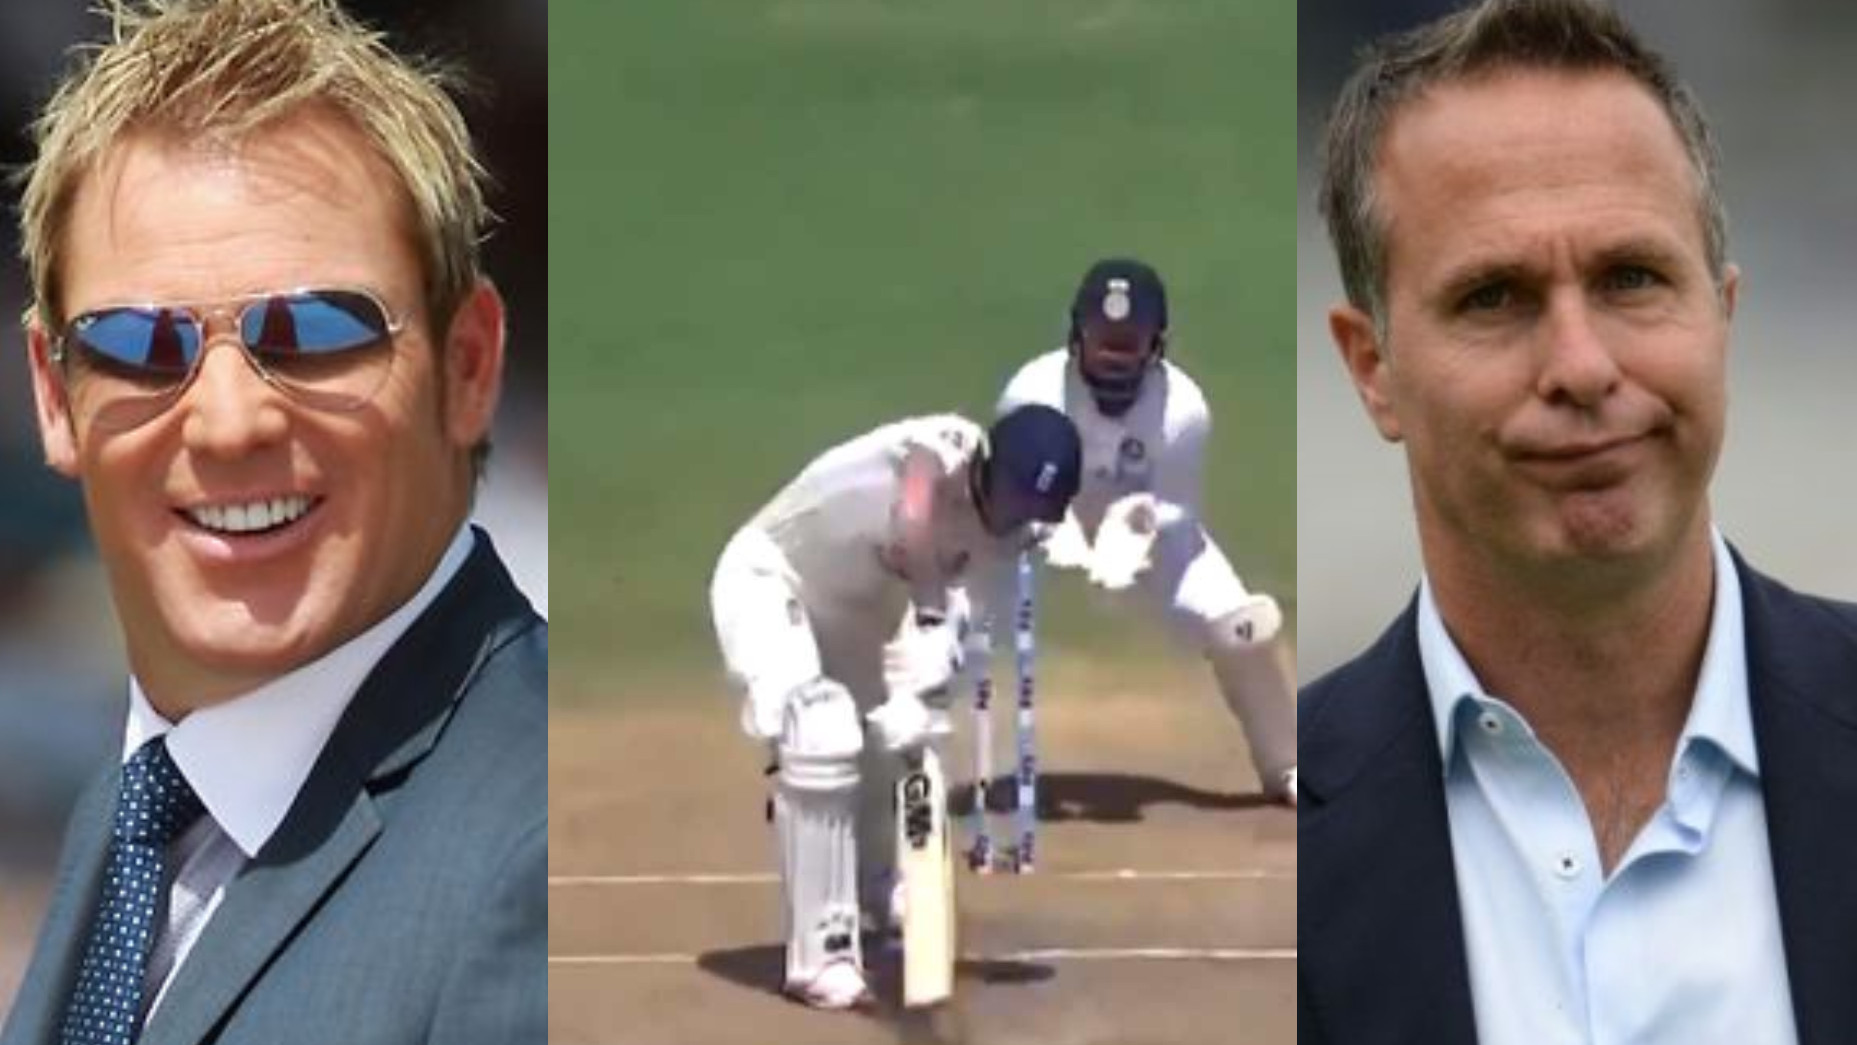 IND v ENG 2021: Shane Warne hits back at Michael Vaughan for calling 2nd Test pitch not fit for Test cricket